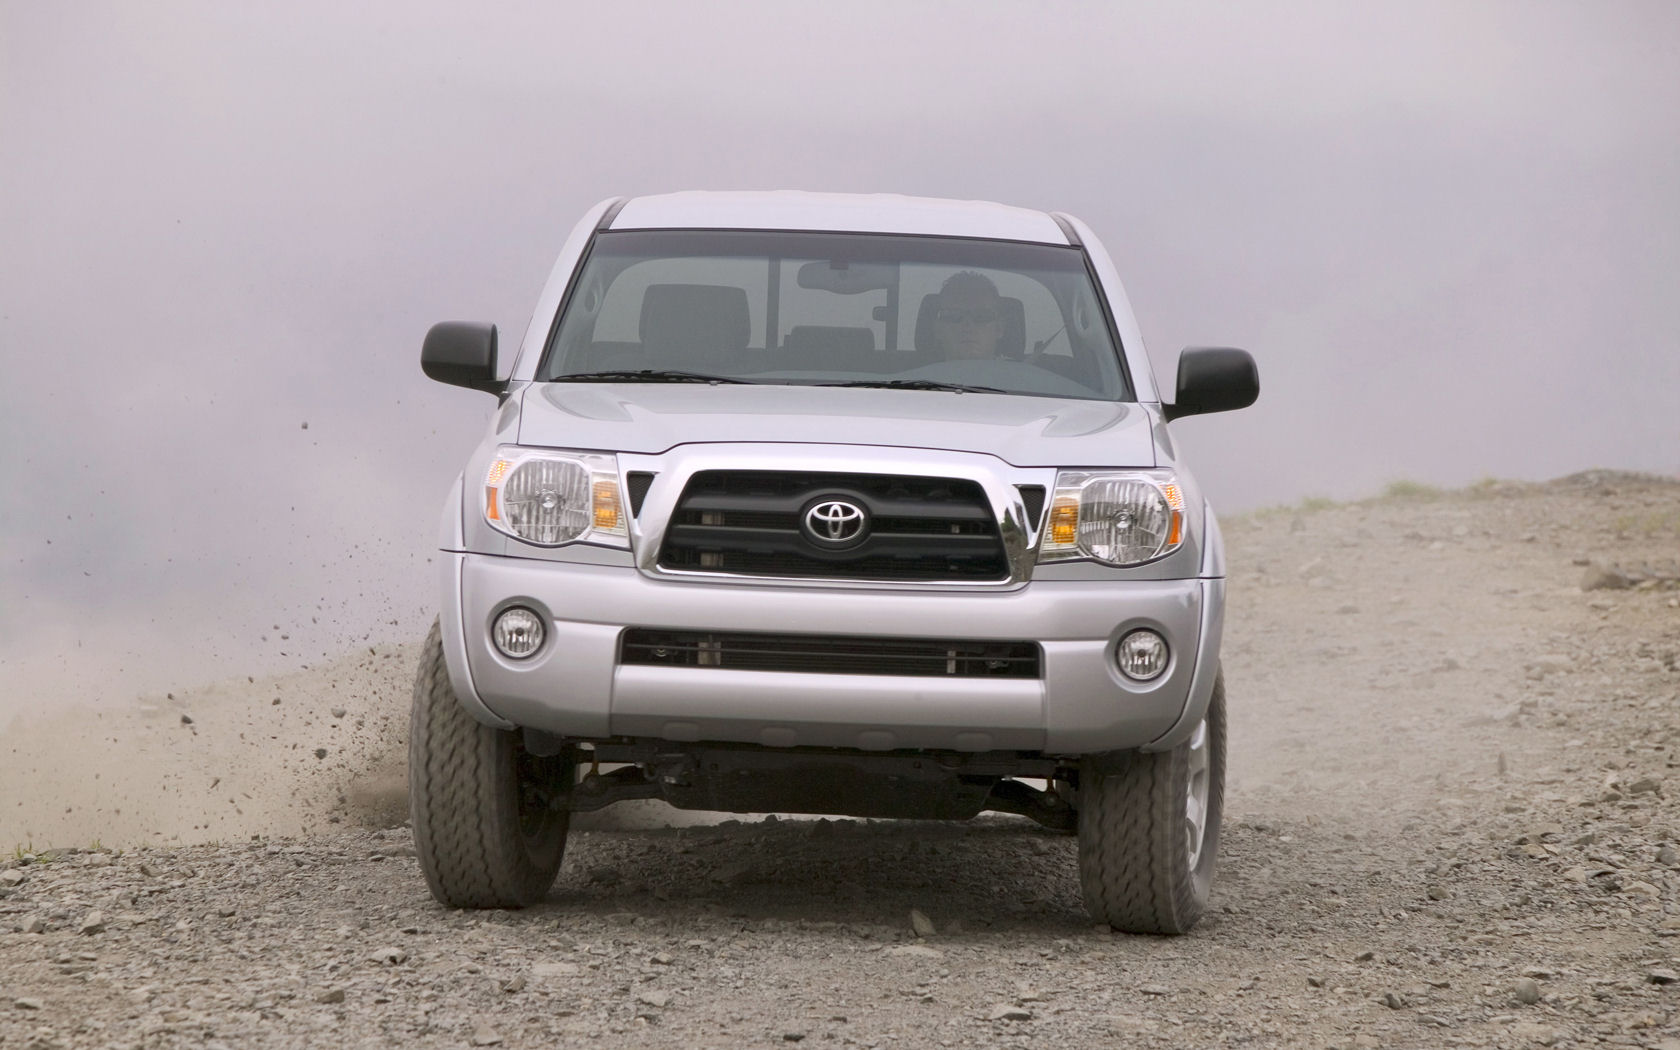 Toyota Toyota Tacoma Toyota Tacoma Desktop Wallpapers Widescreen 1680x1050